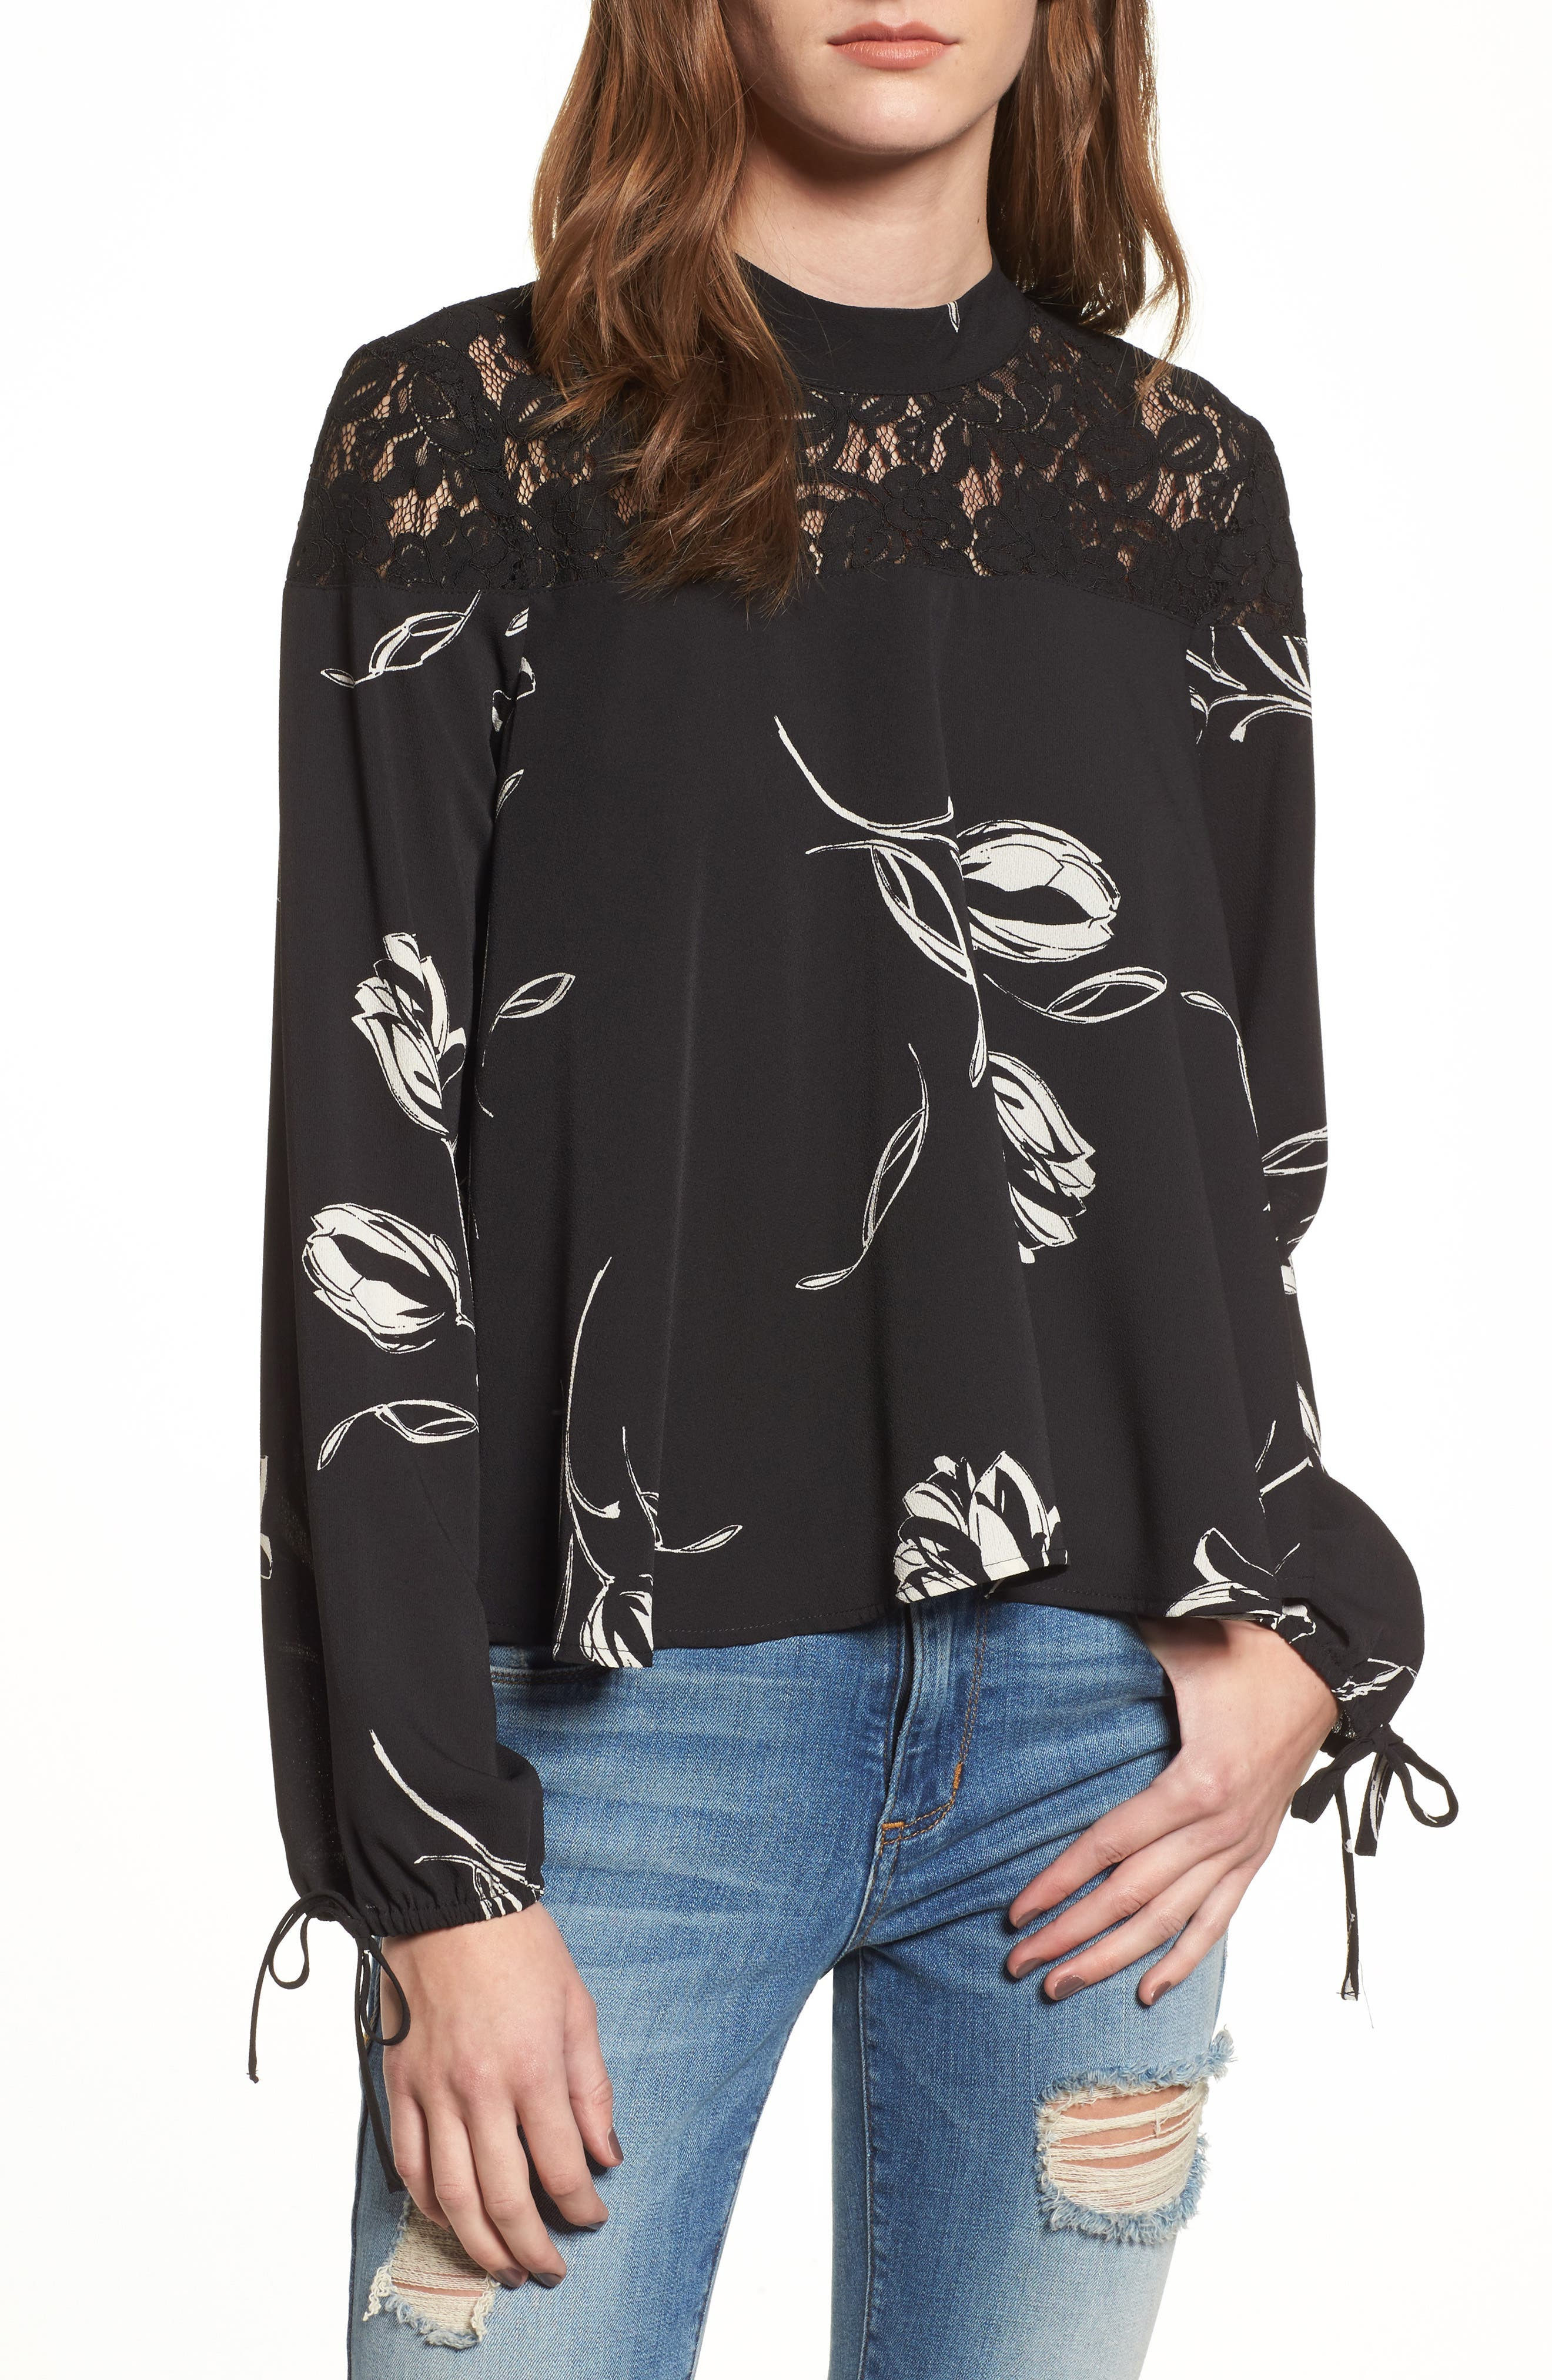 Alternate Image 1 Selected - Band of Gypsies Lace Yoke Floral Print Blouse